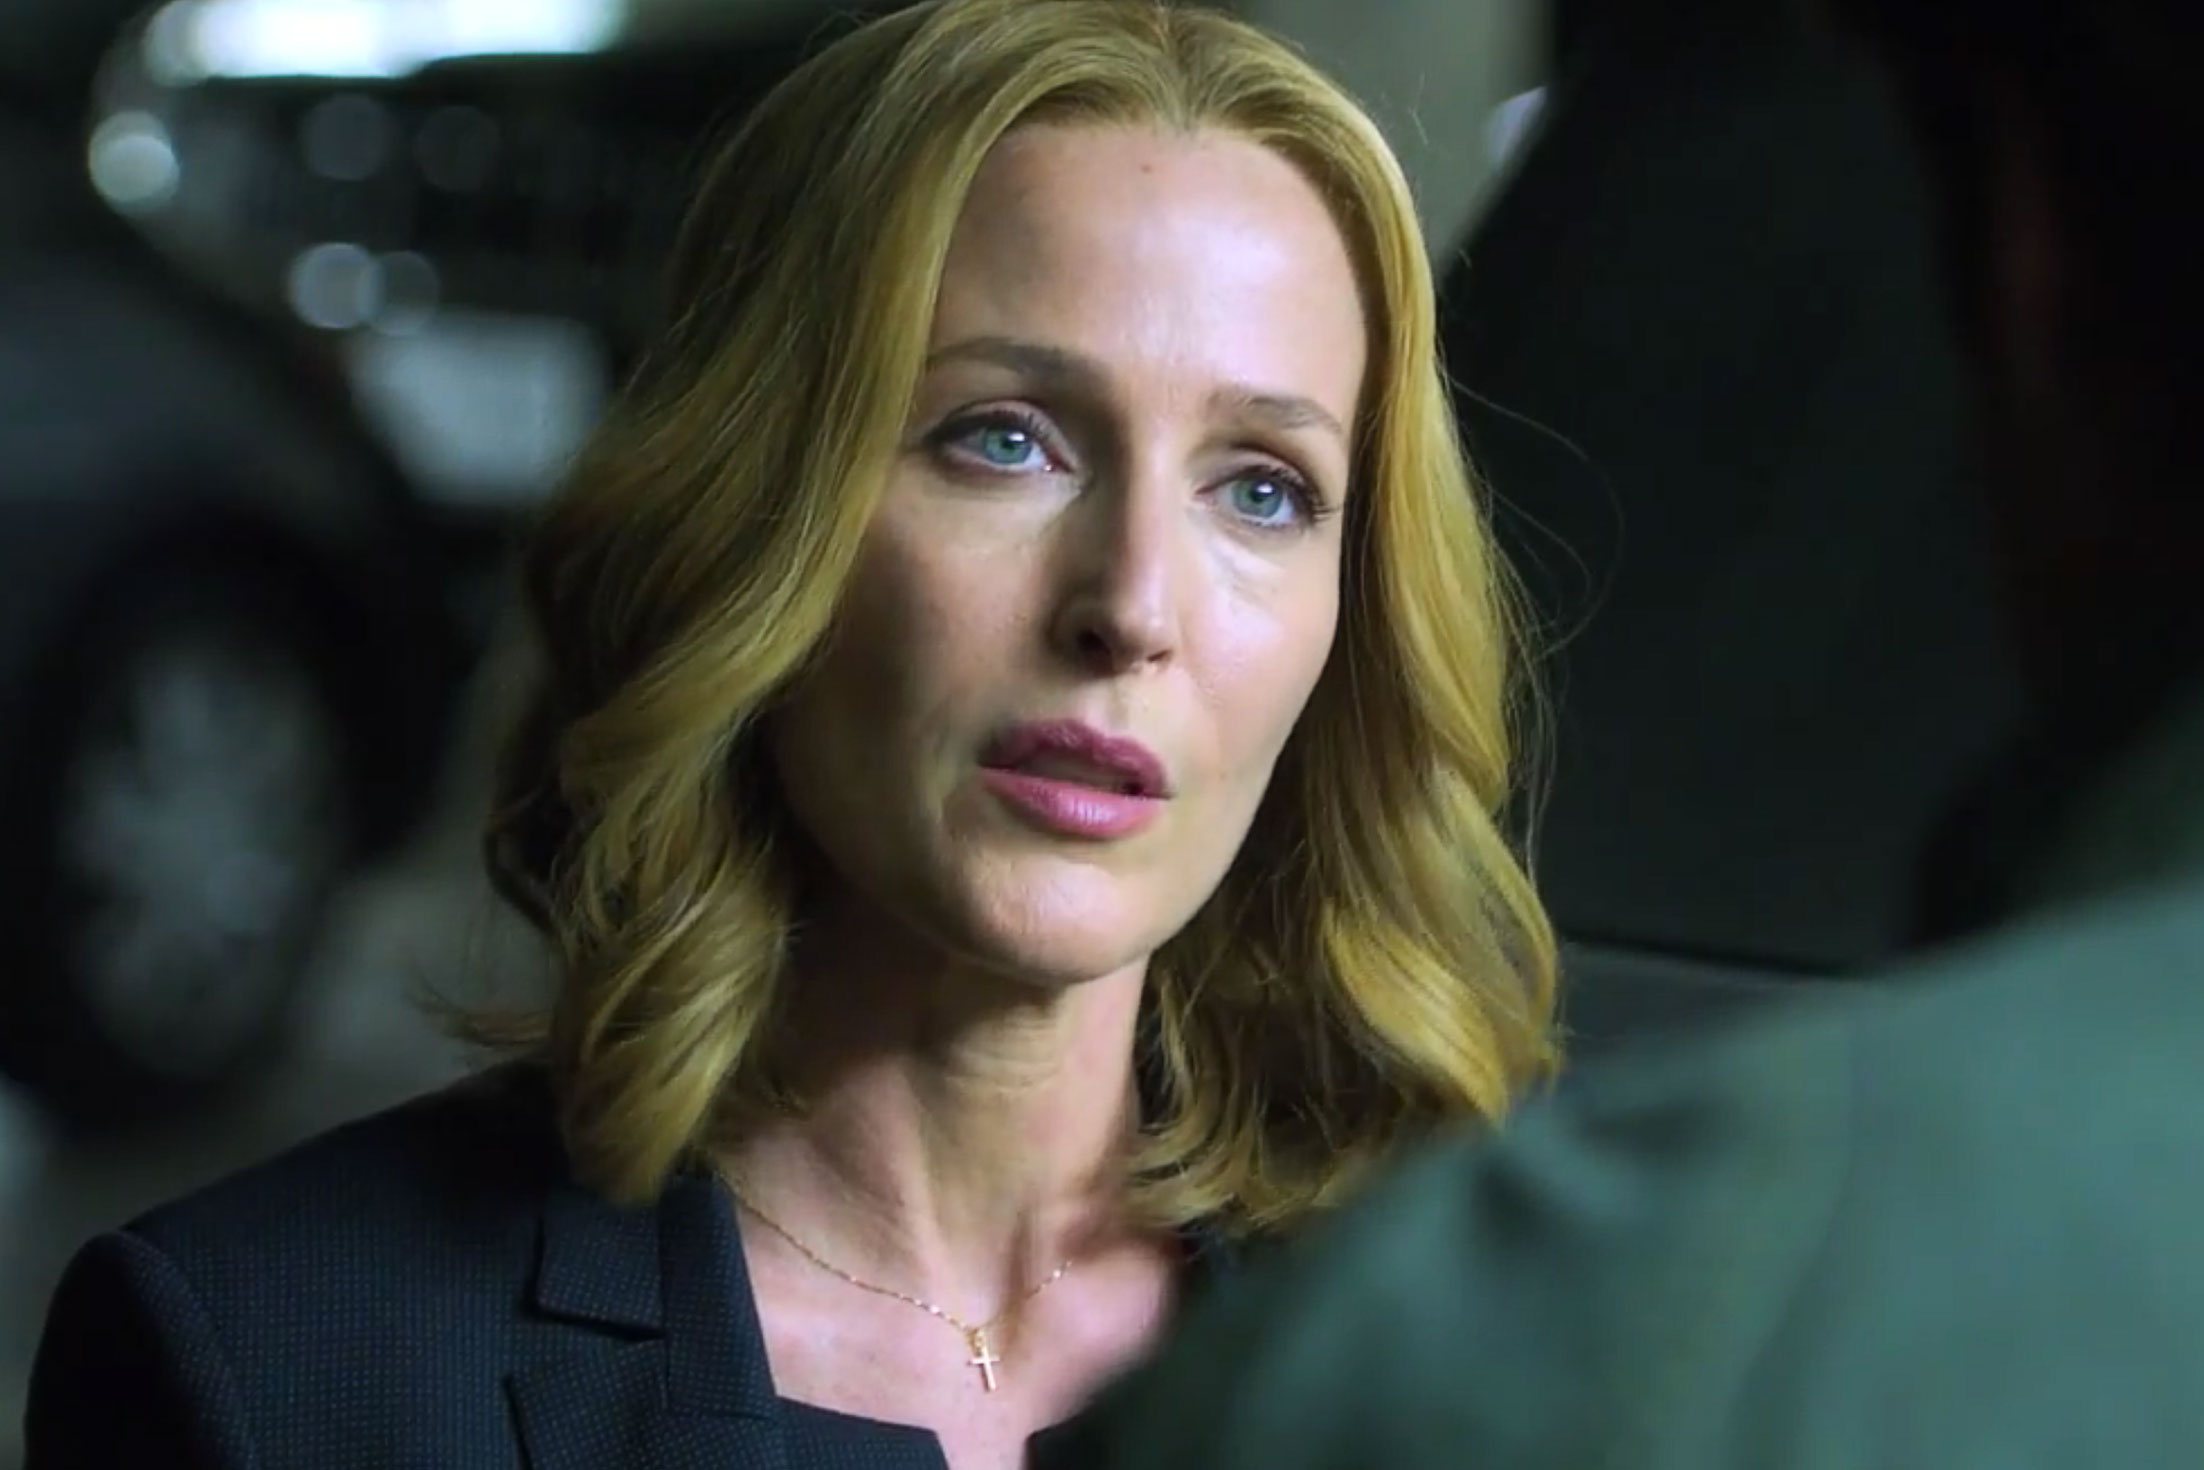 Watch More Footage From Upcoming 'The X-Files' Remake